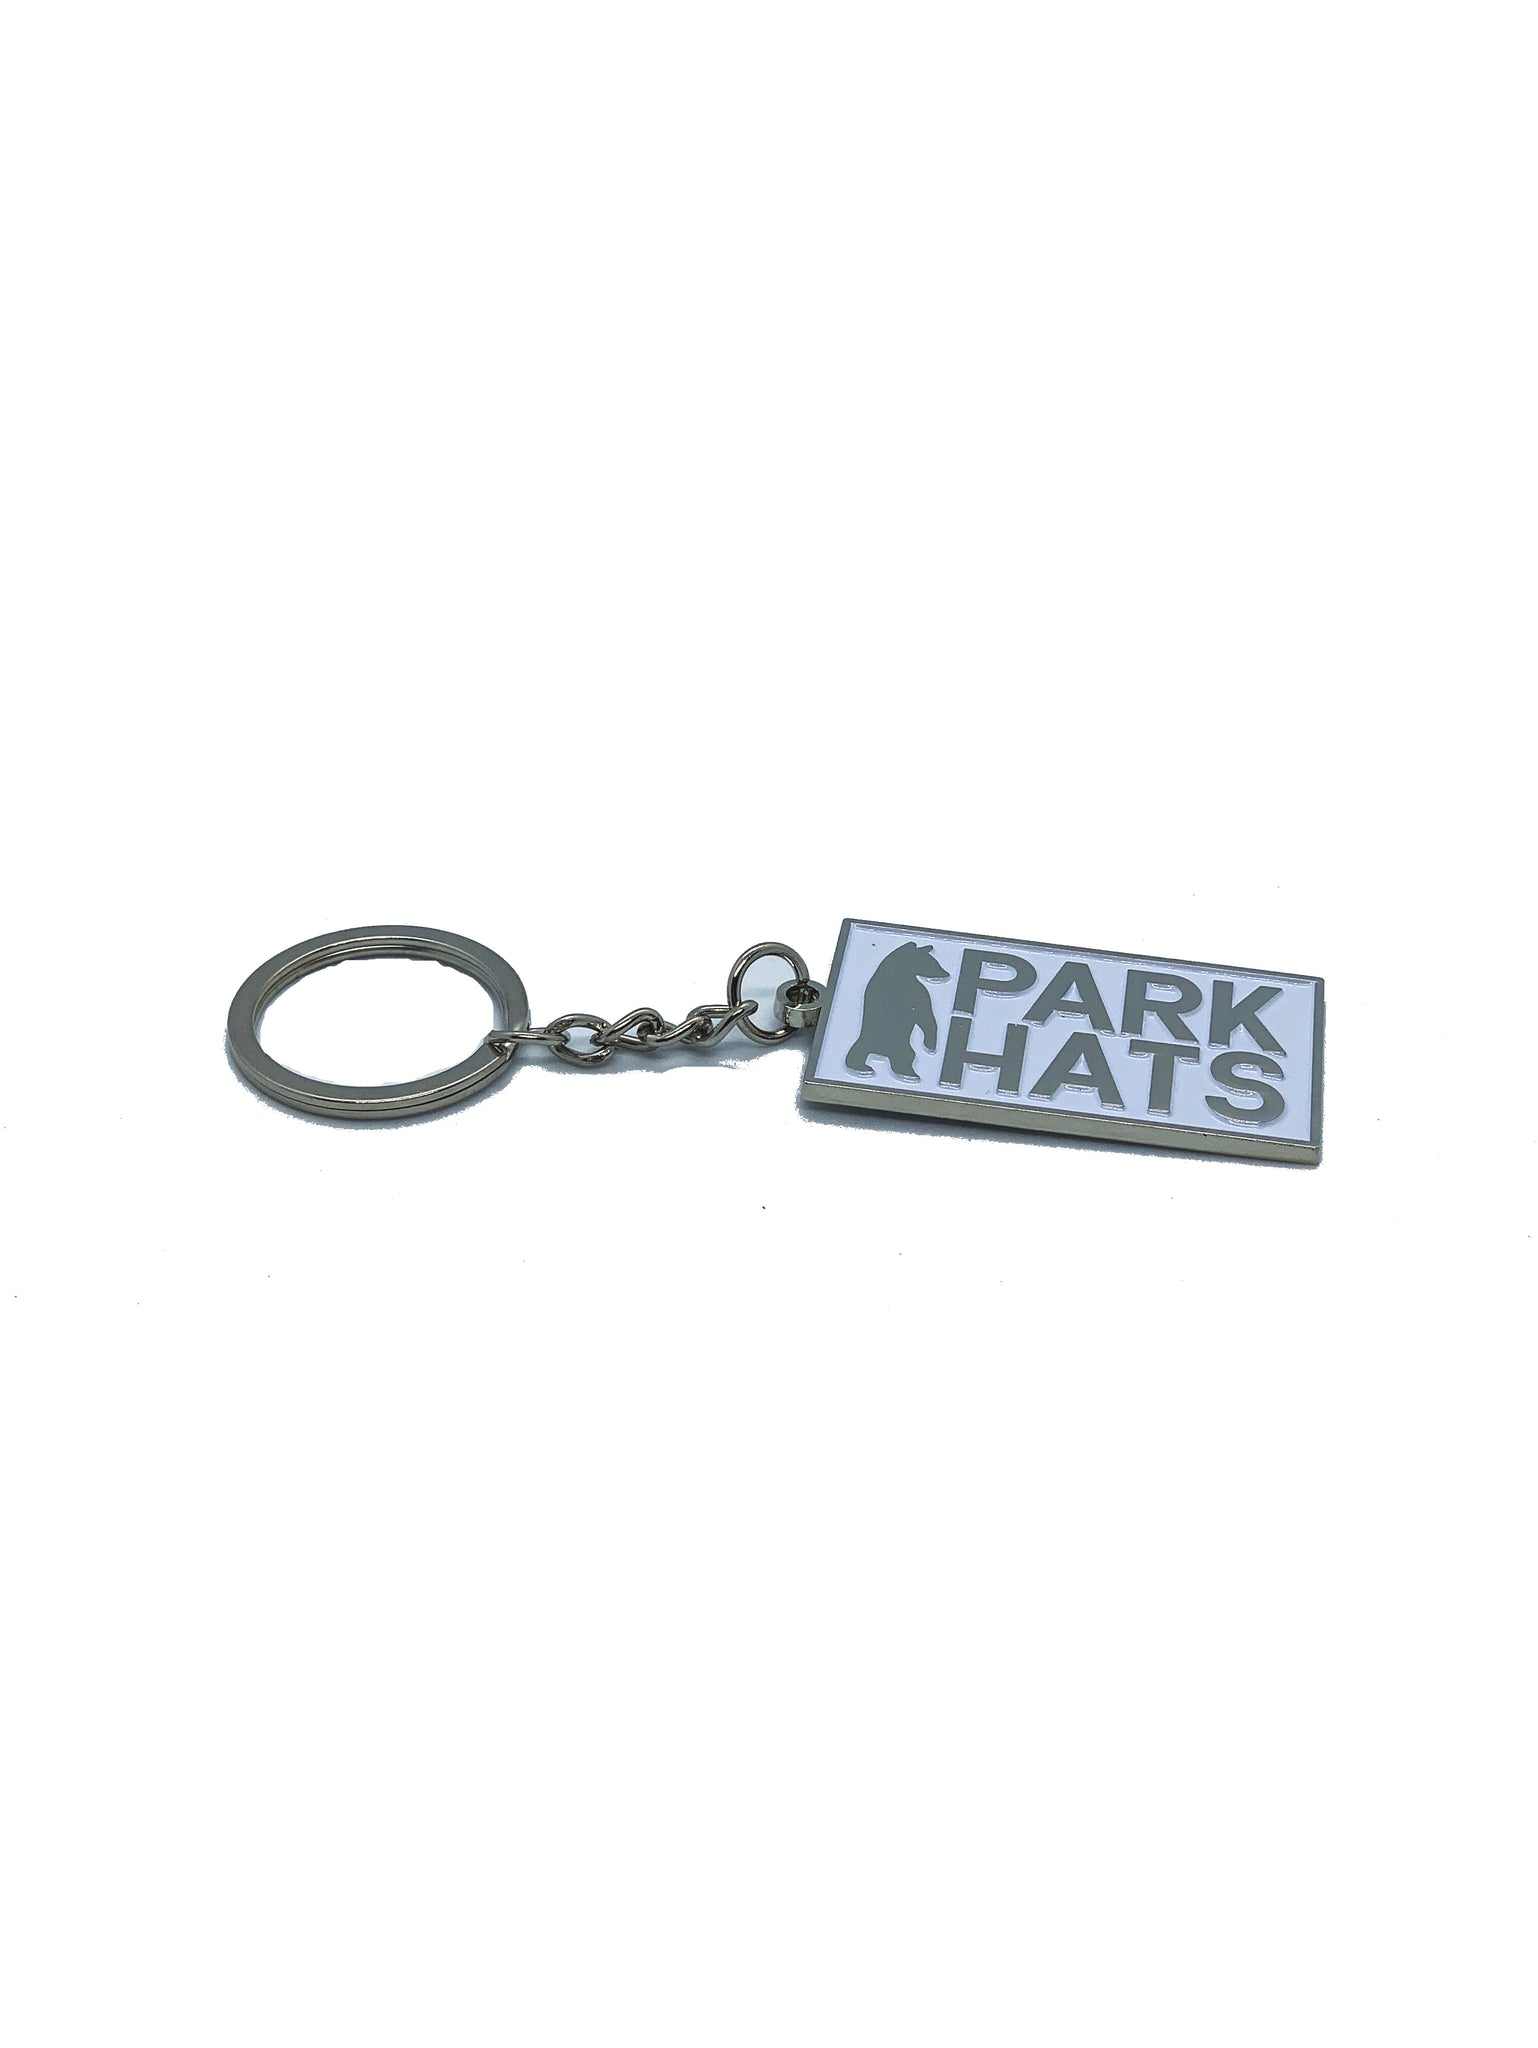 Park Hats Key Chain